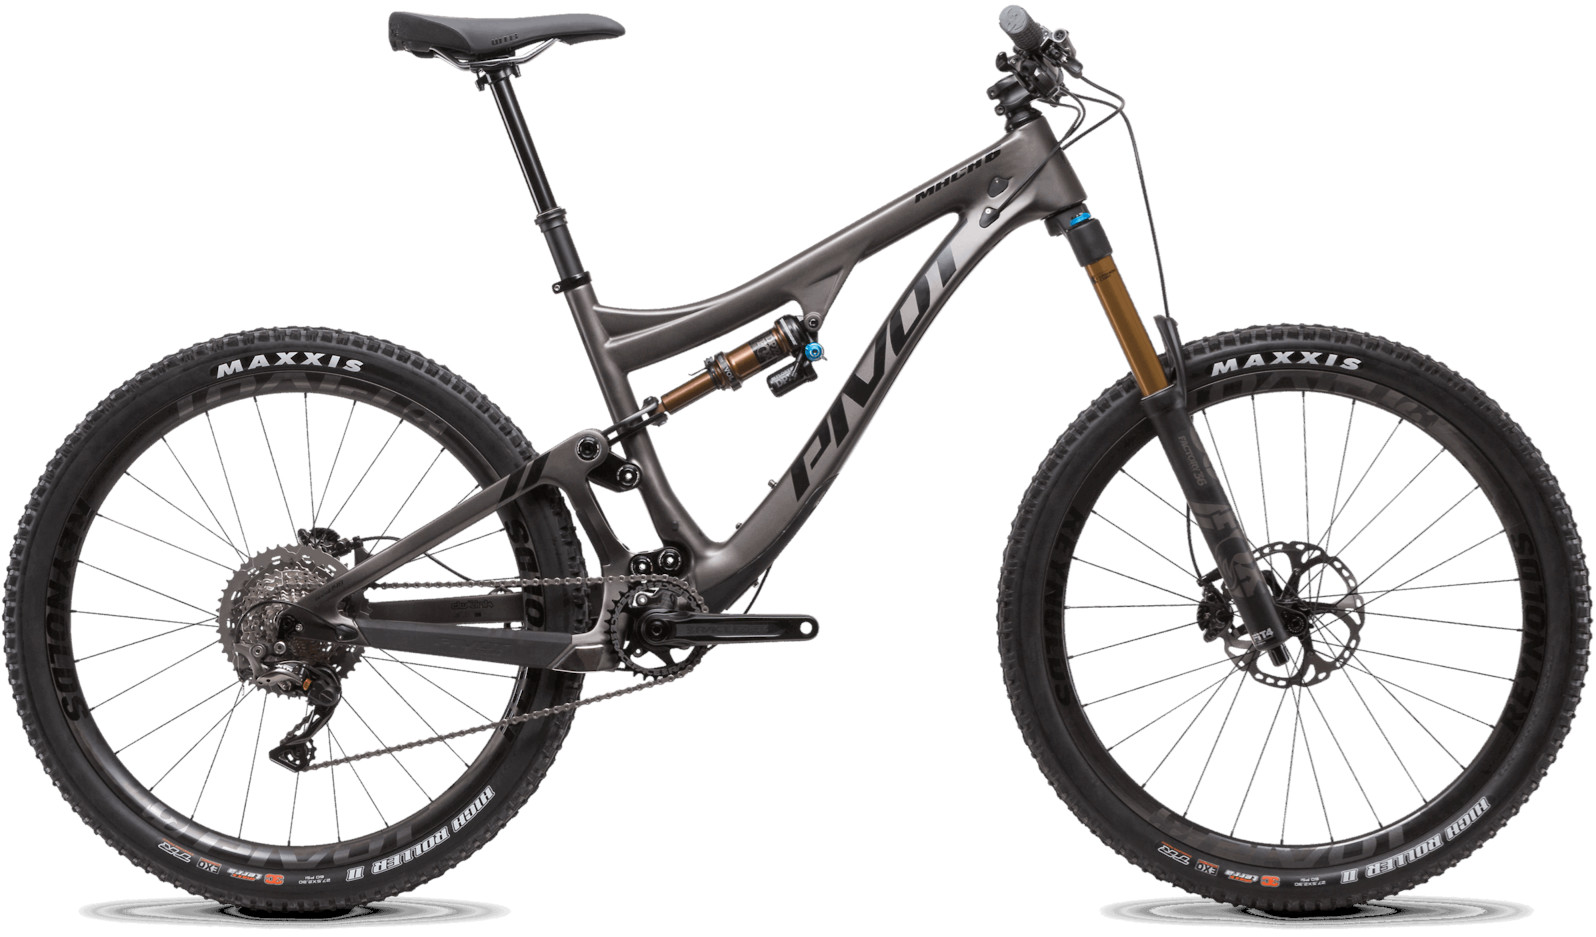 2020 Pivot Mach 6 Carbon Sterling Silver (Team XTR build pictured)